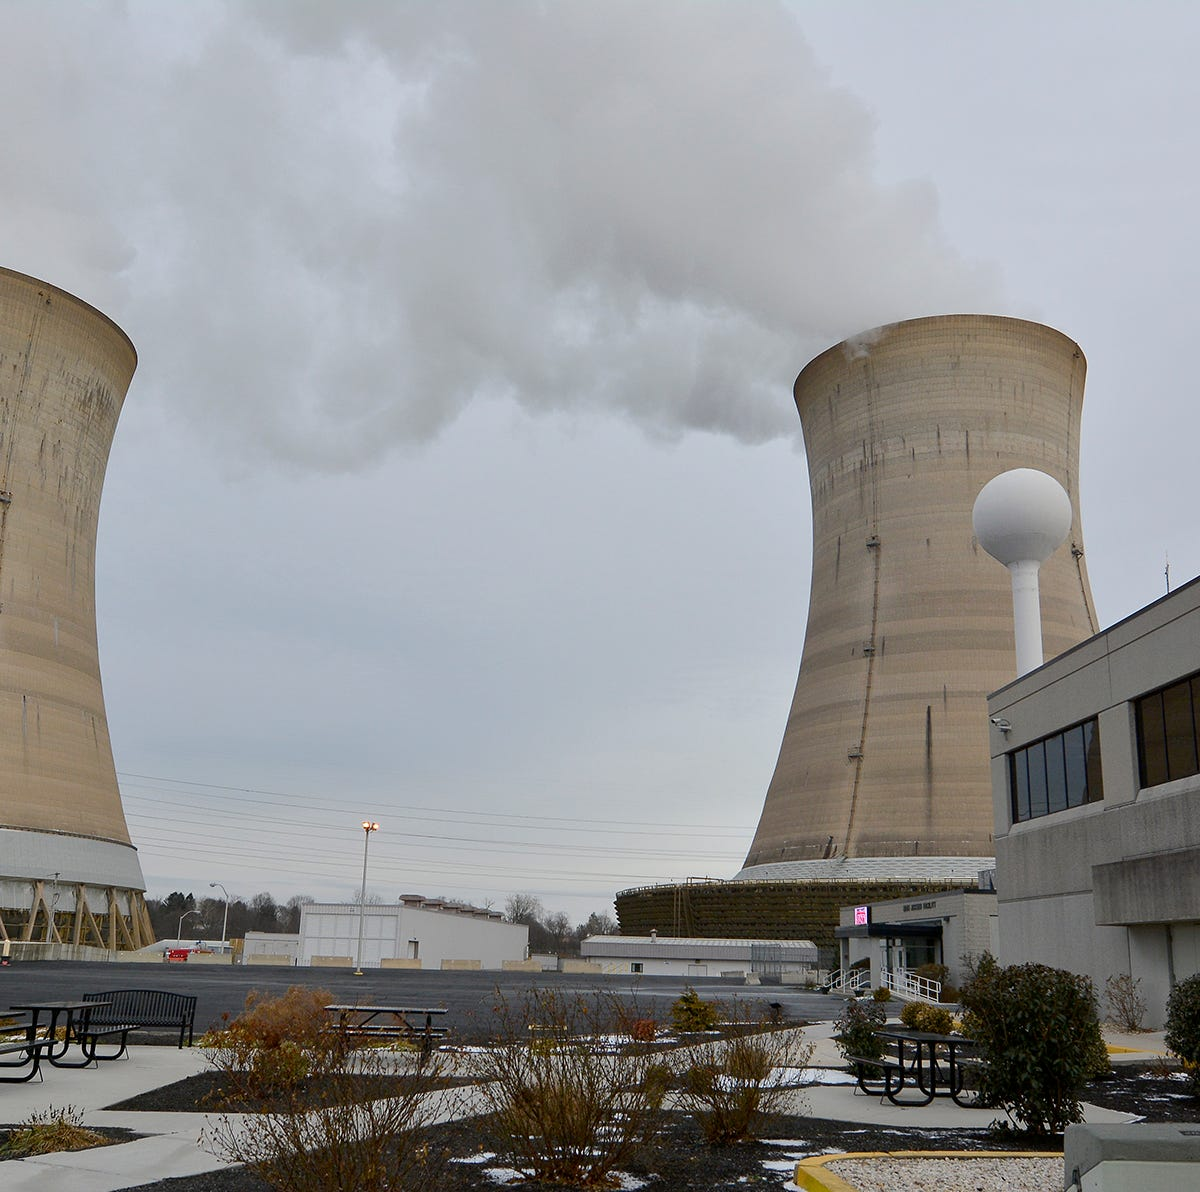 OP-ED: Reilly urges support for nuclear power industry in Pa.